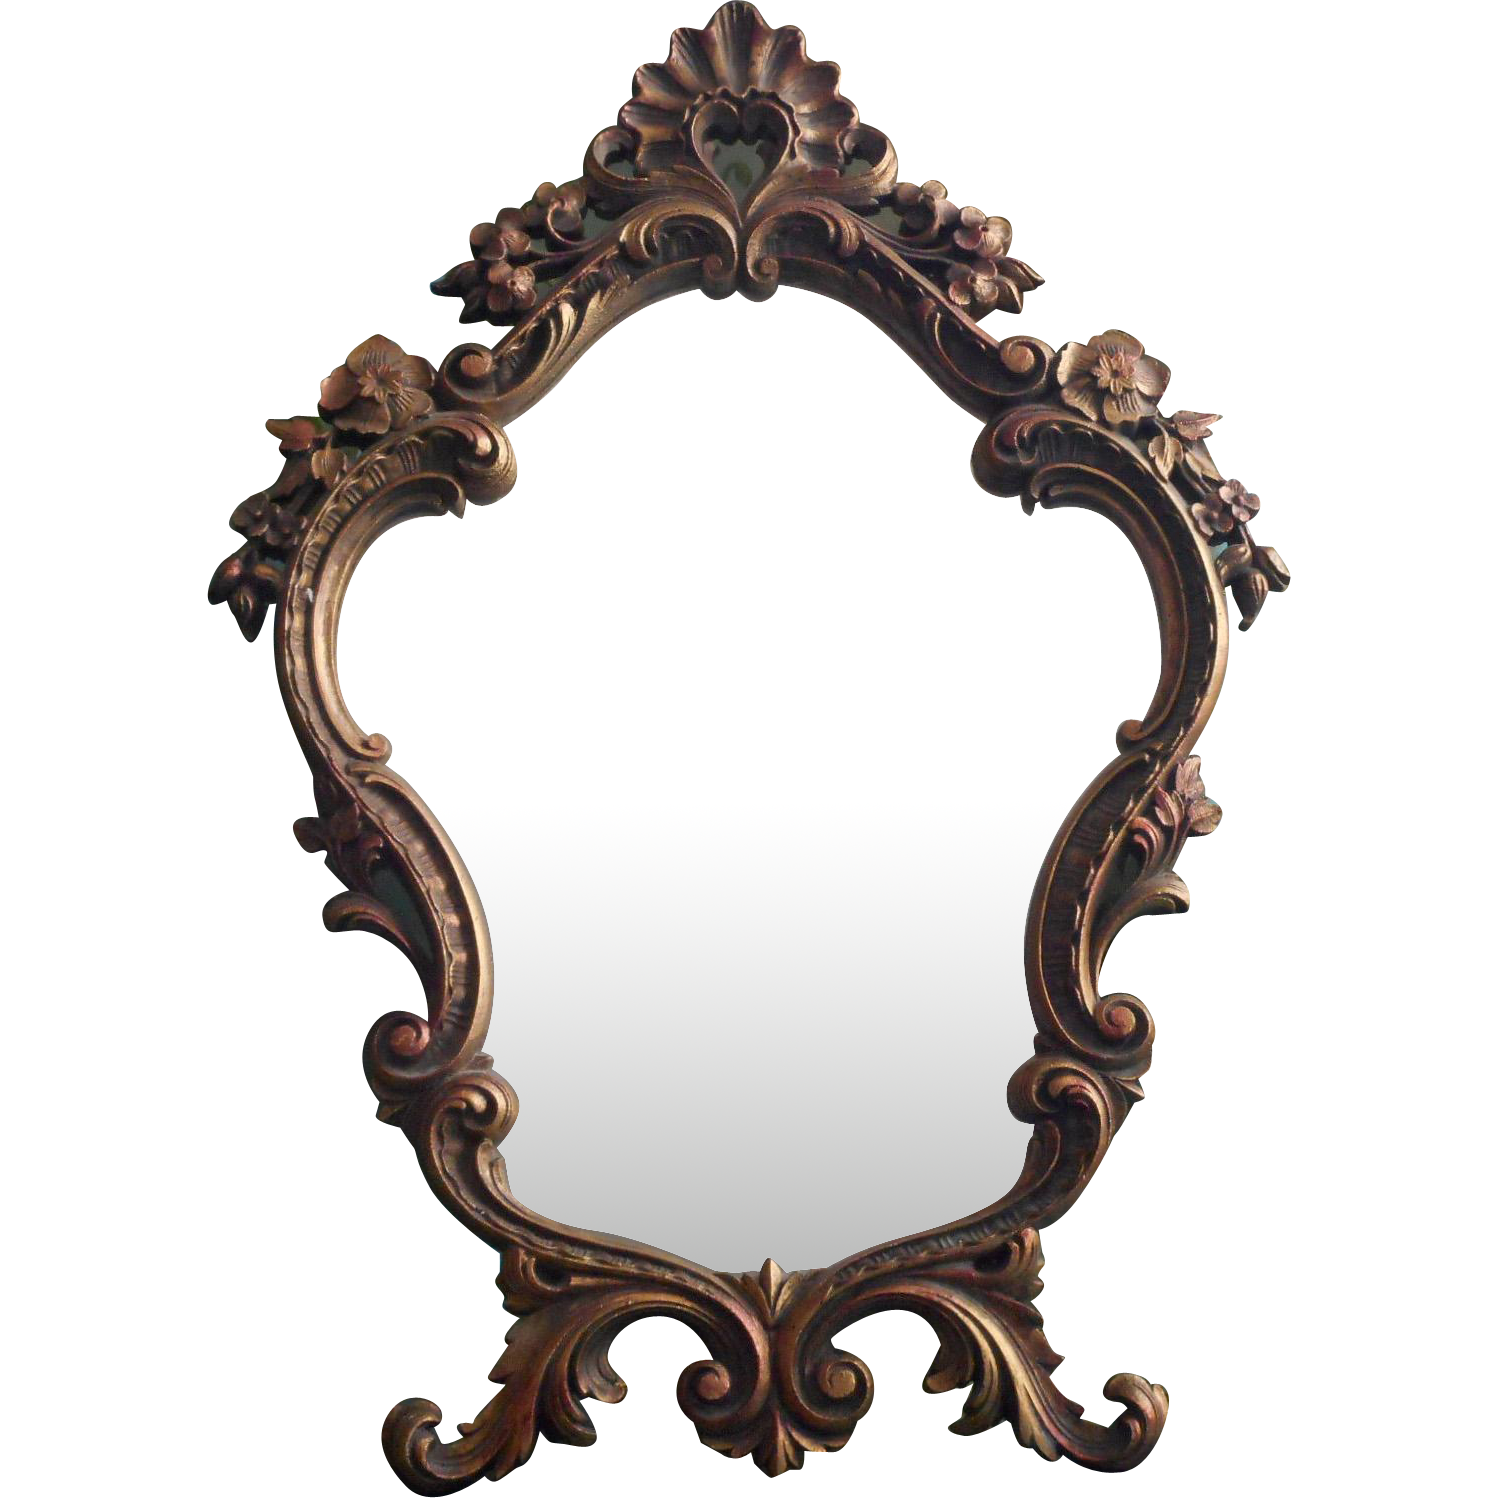 Vintage mirror png. Ornate easel style standing